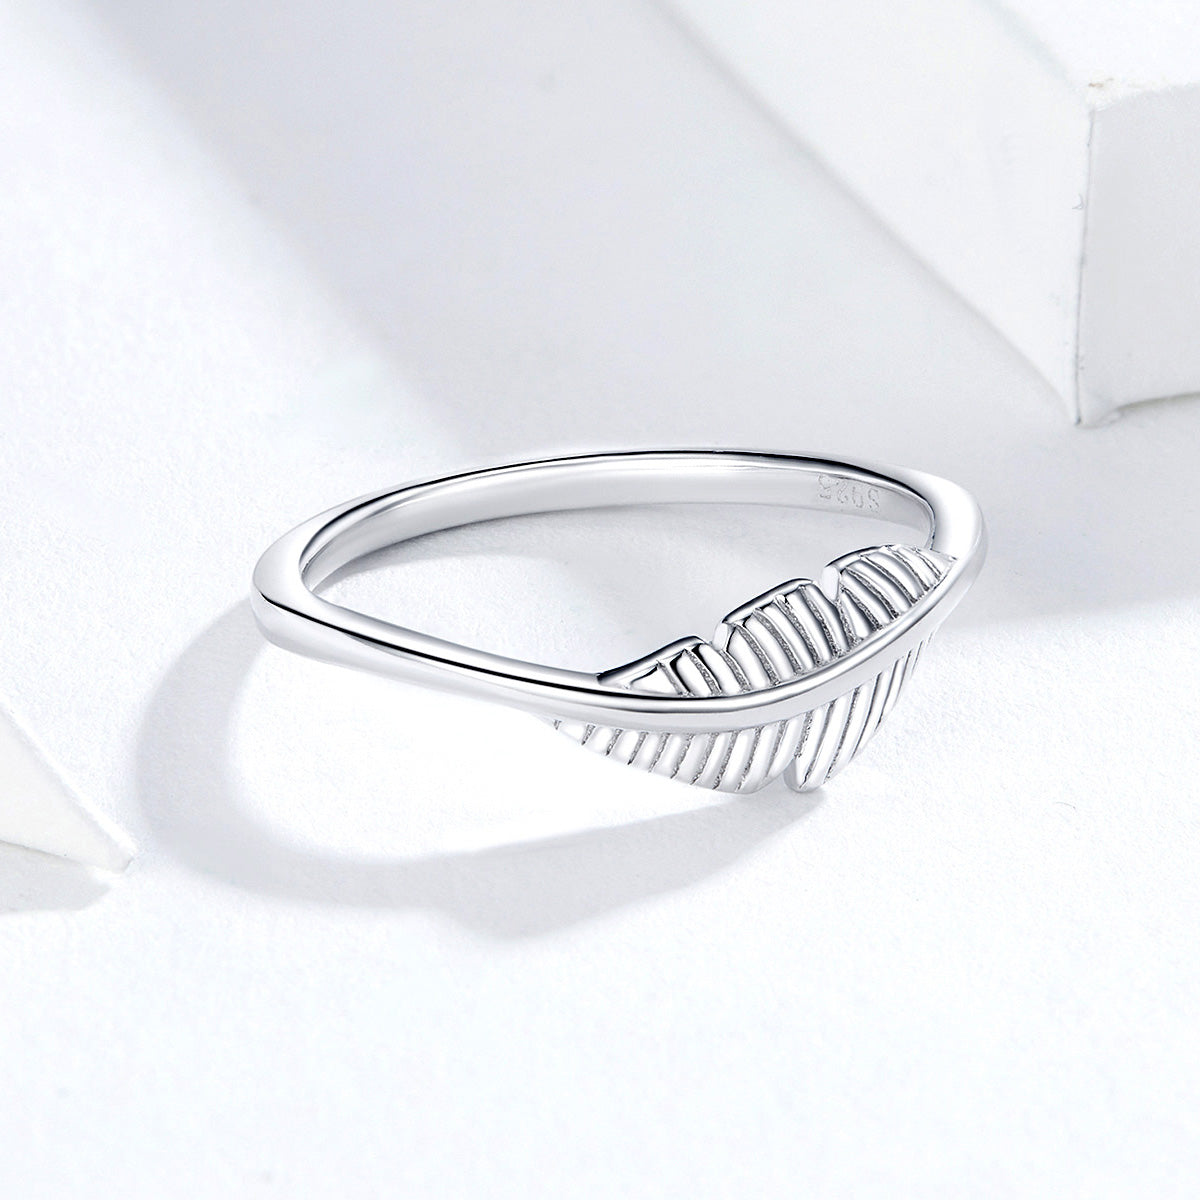 S925 Sterling Silver Feather Ring Oxidized Zircon Ring